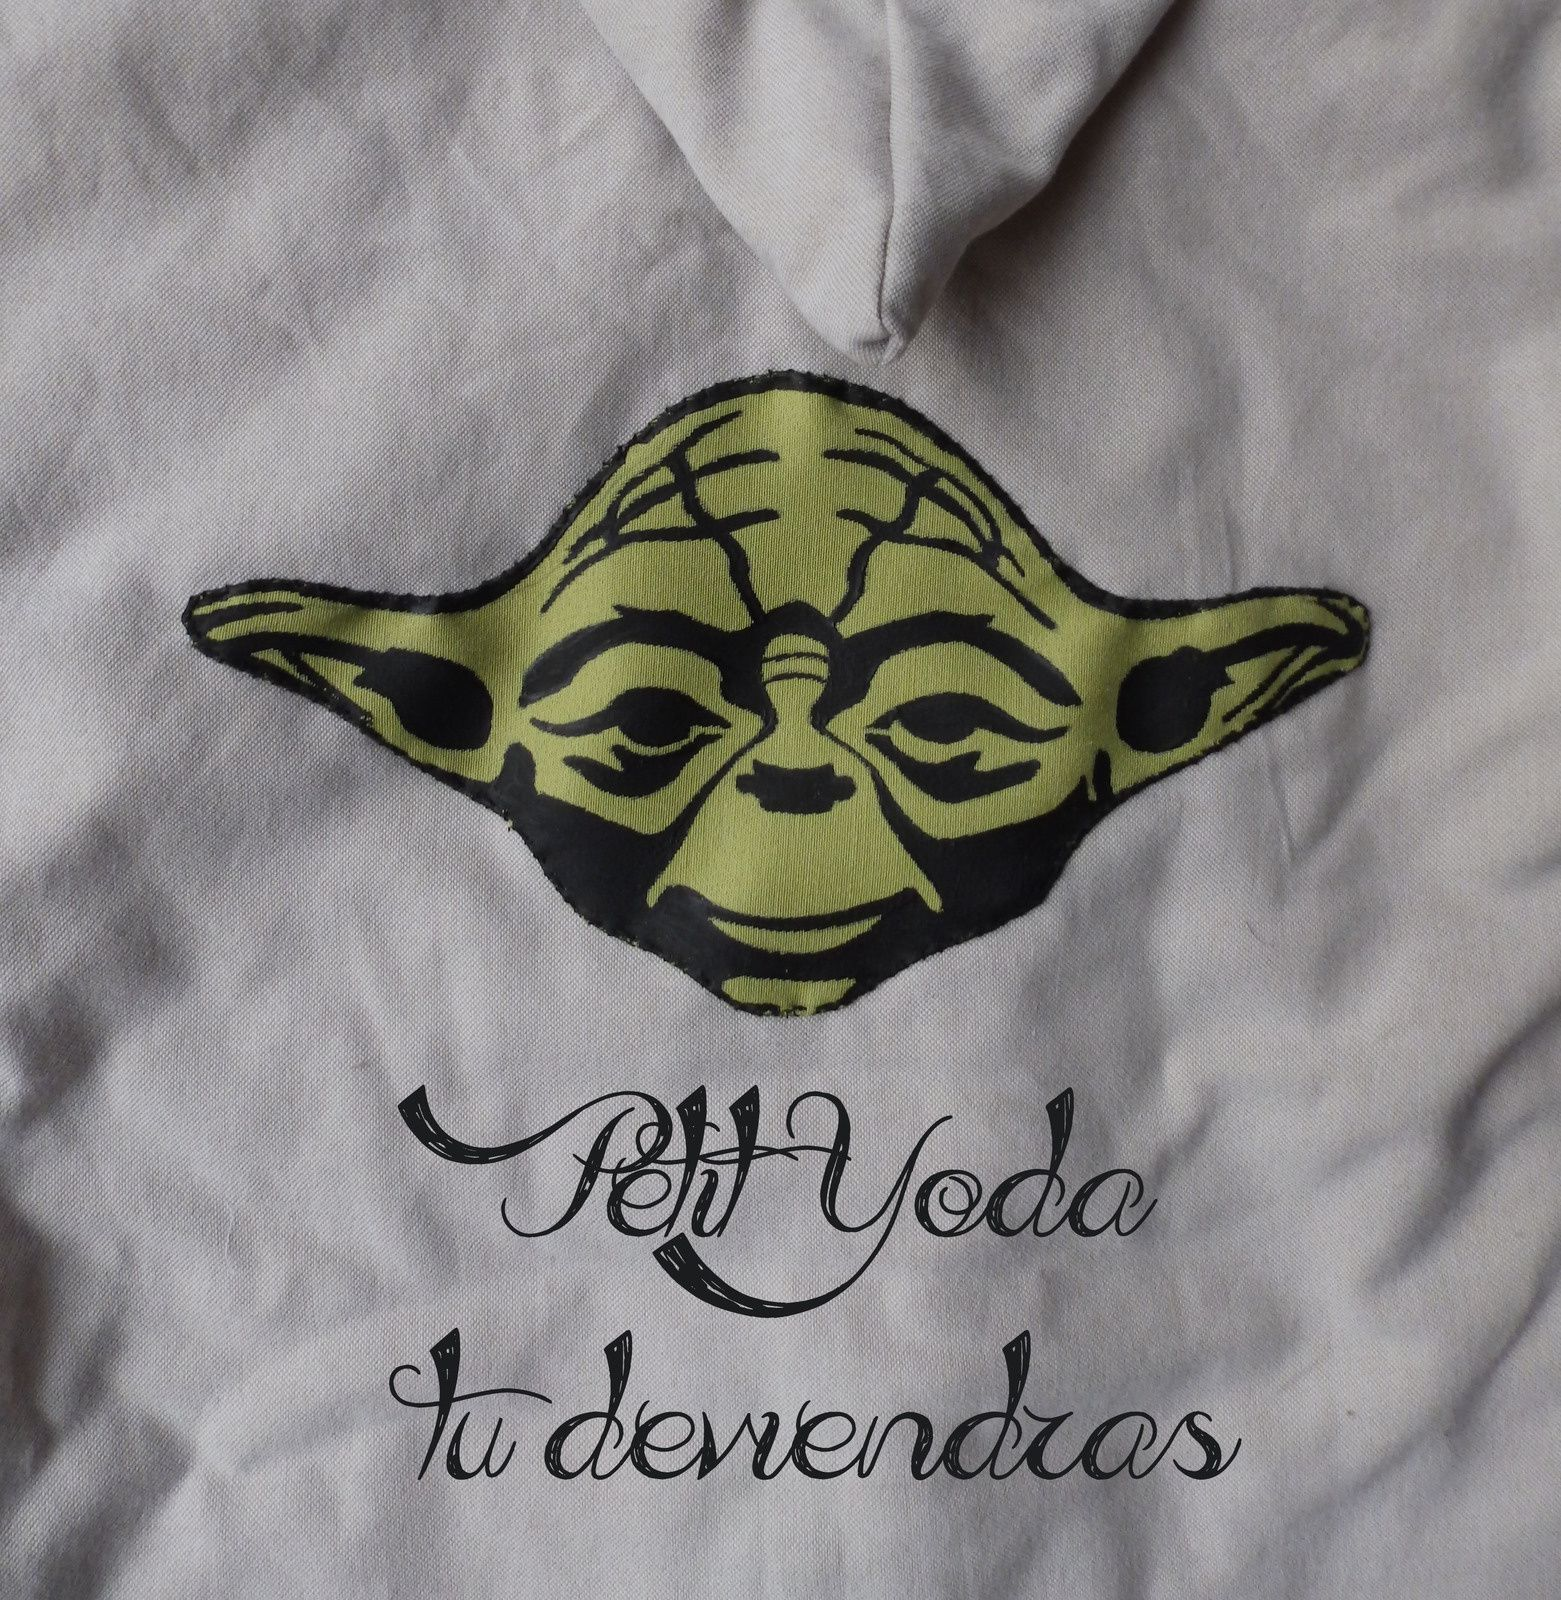 Yoda, THE créature imaginaire